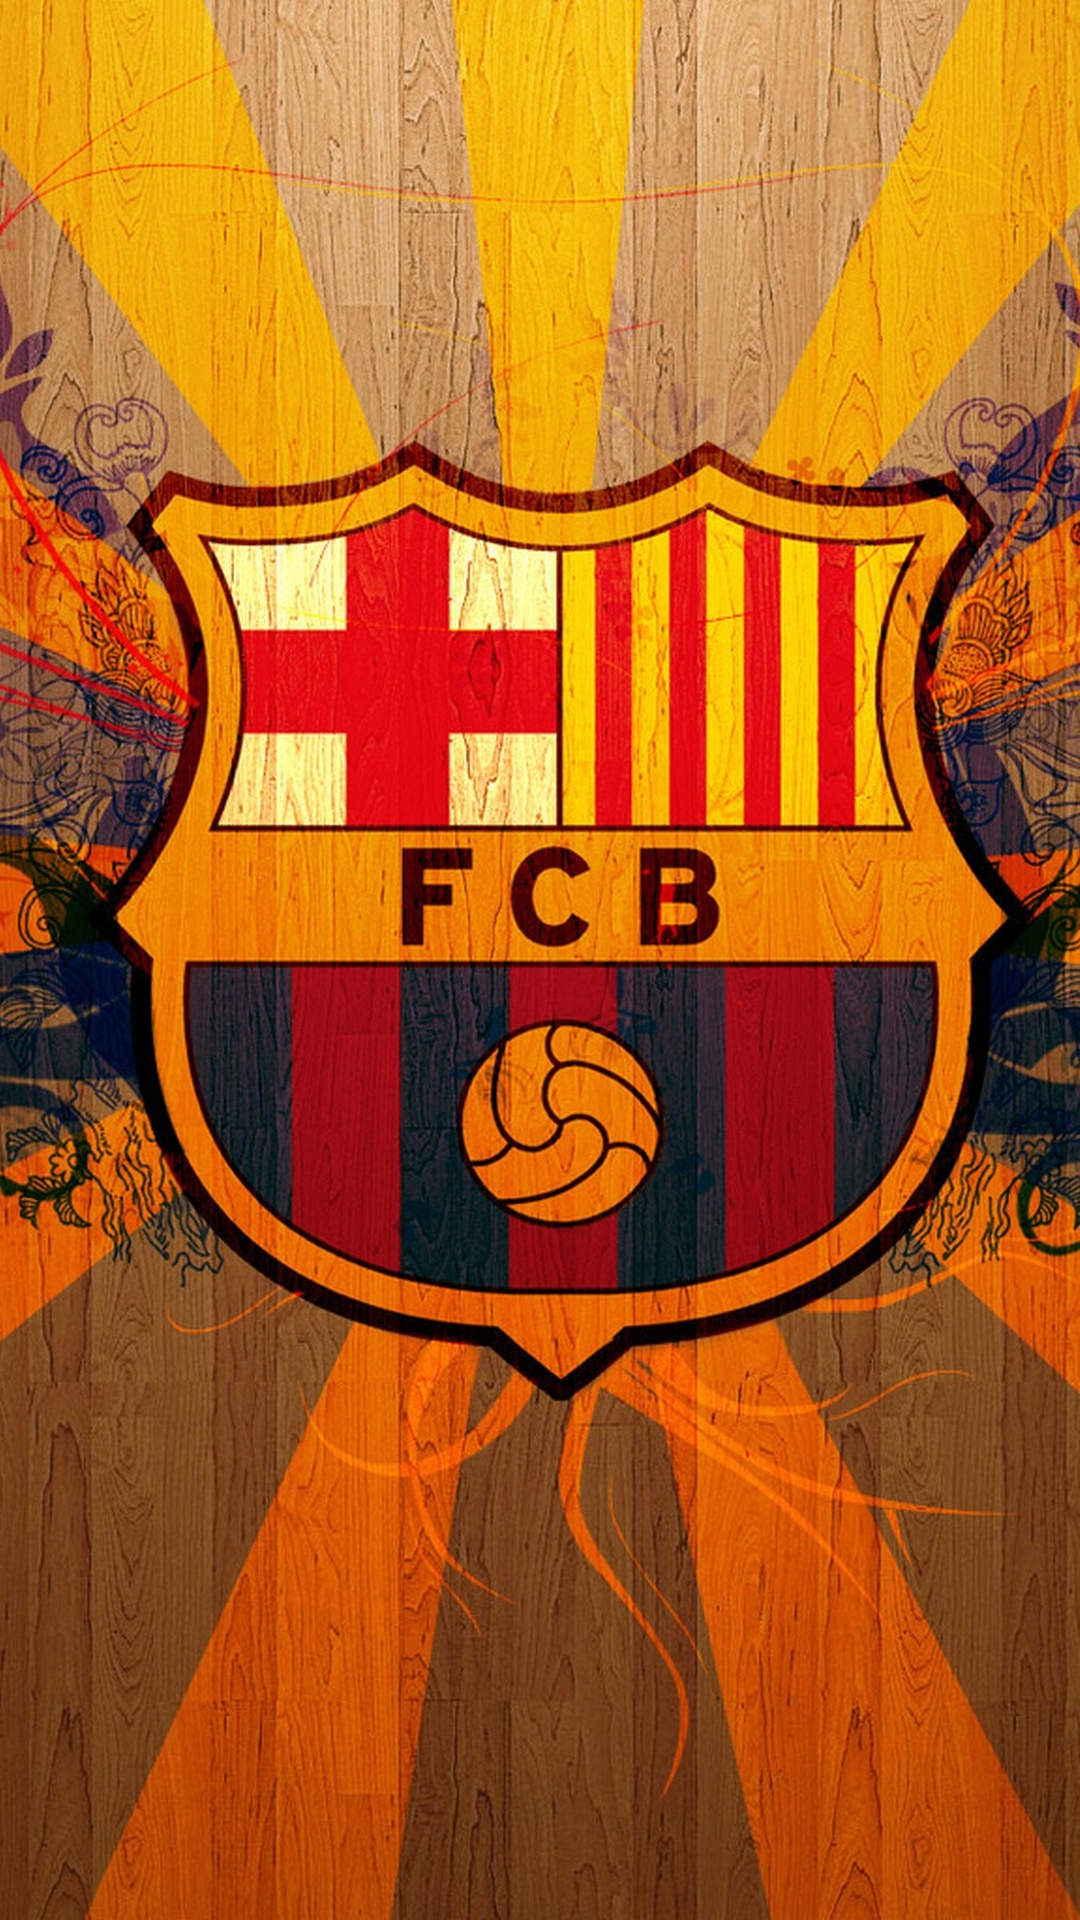 Wallpaper for galaxy s4 with FC Barcelona logo in 1080x1920 resolution